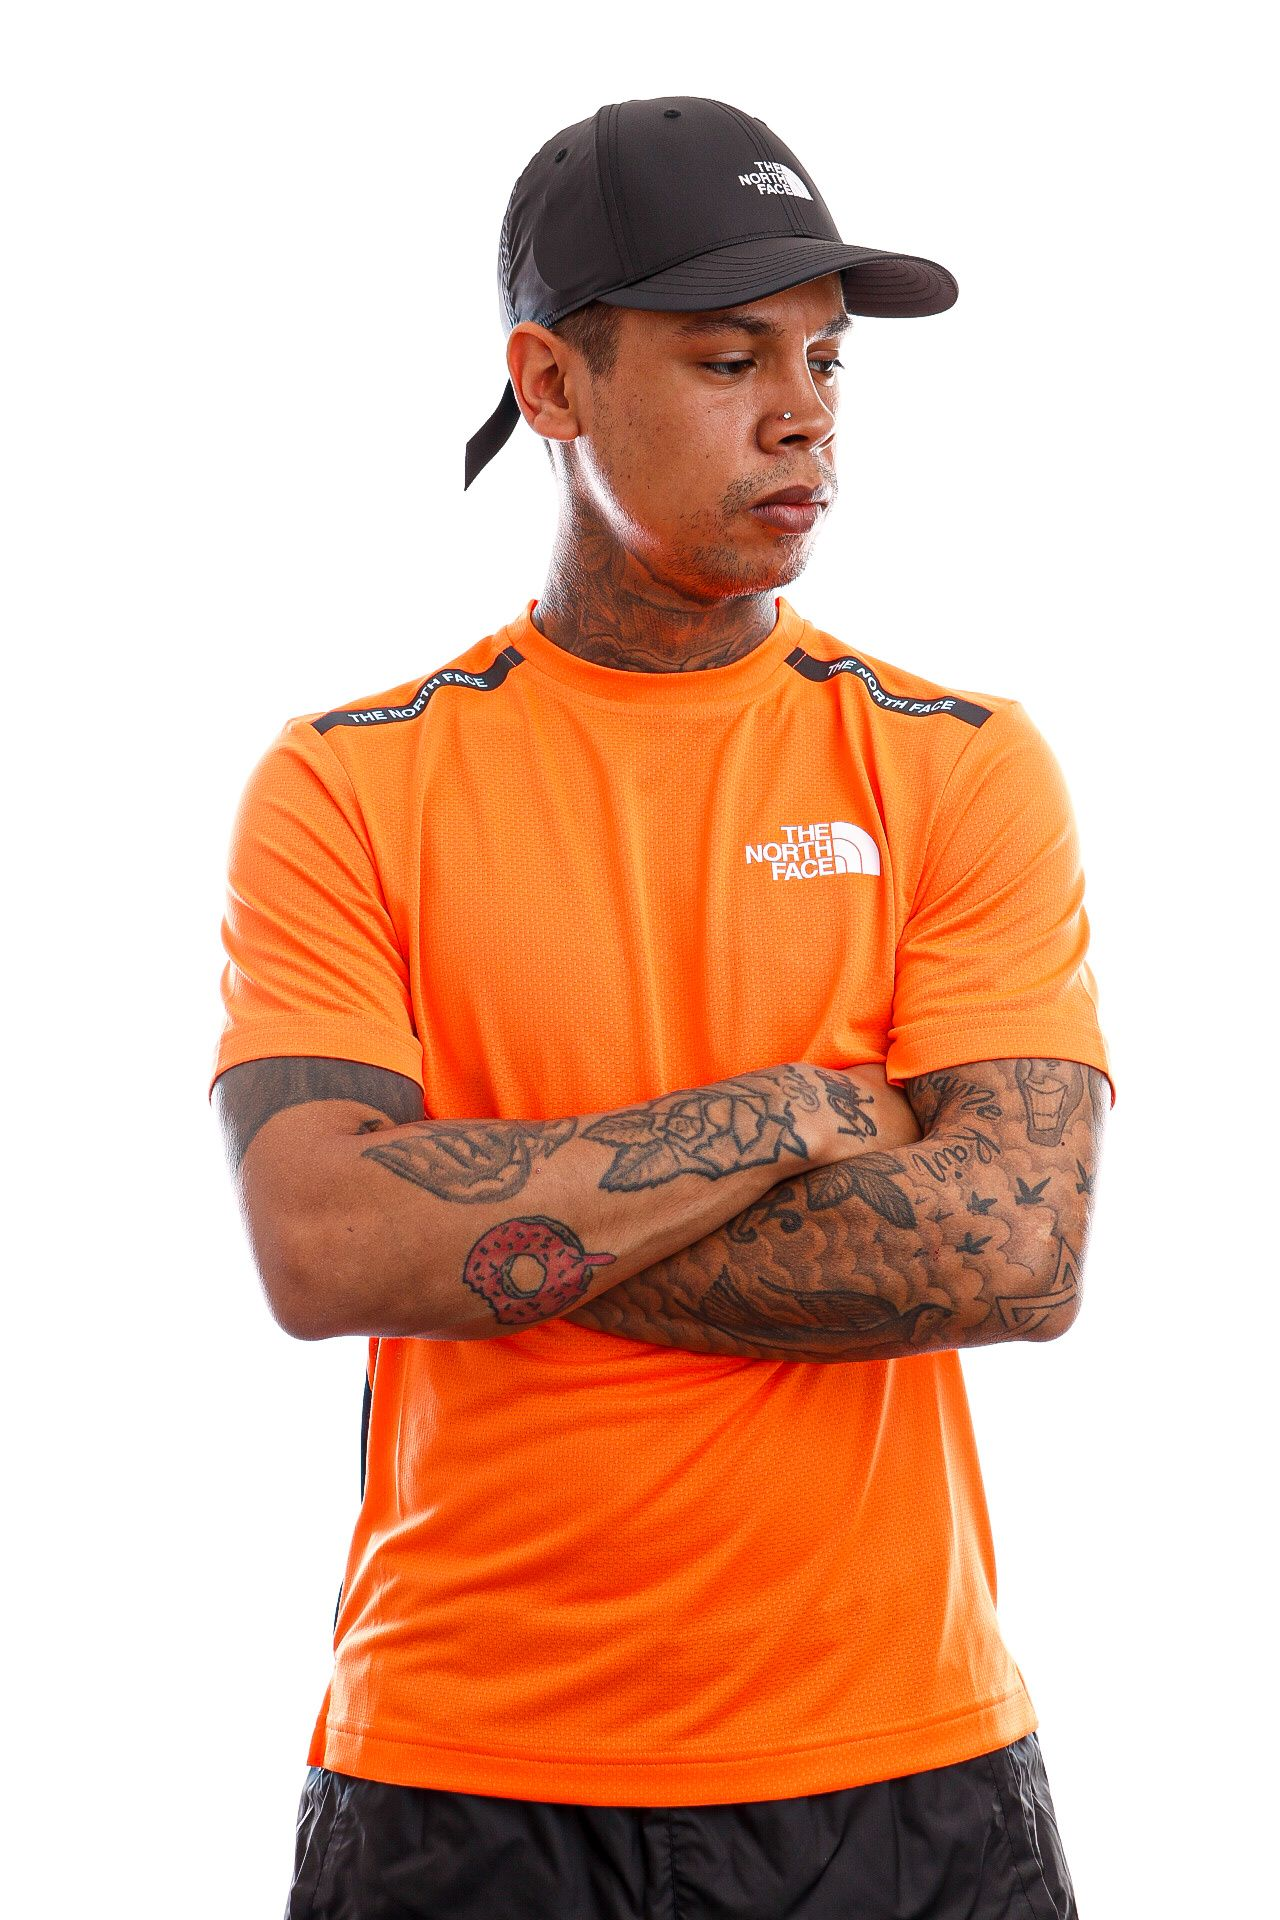 Afbeelding van The North Face T-shirt Mens MA S/S Tee Shocking Orange NF0A5578BEH1